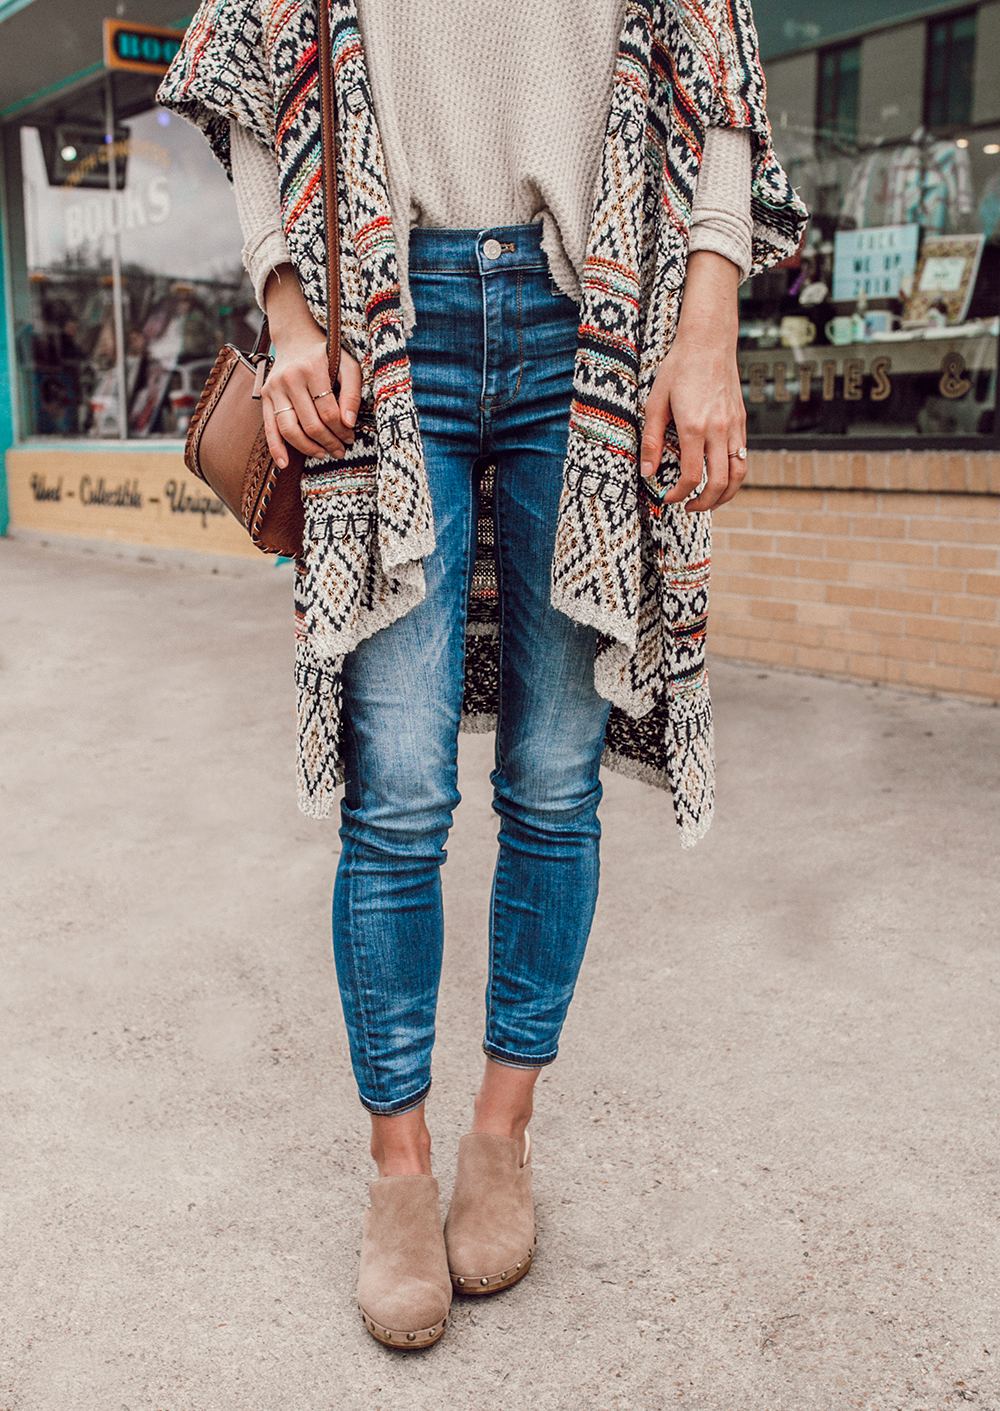 livvyland-blog-olivia-watson-austin-texas-fashion-style-blogger-south-congress-avenue-sole-society-taupe-clogs-boho-outfit-idea-10